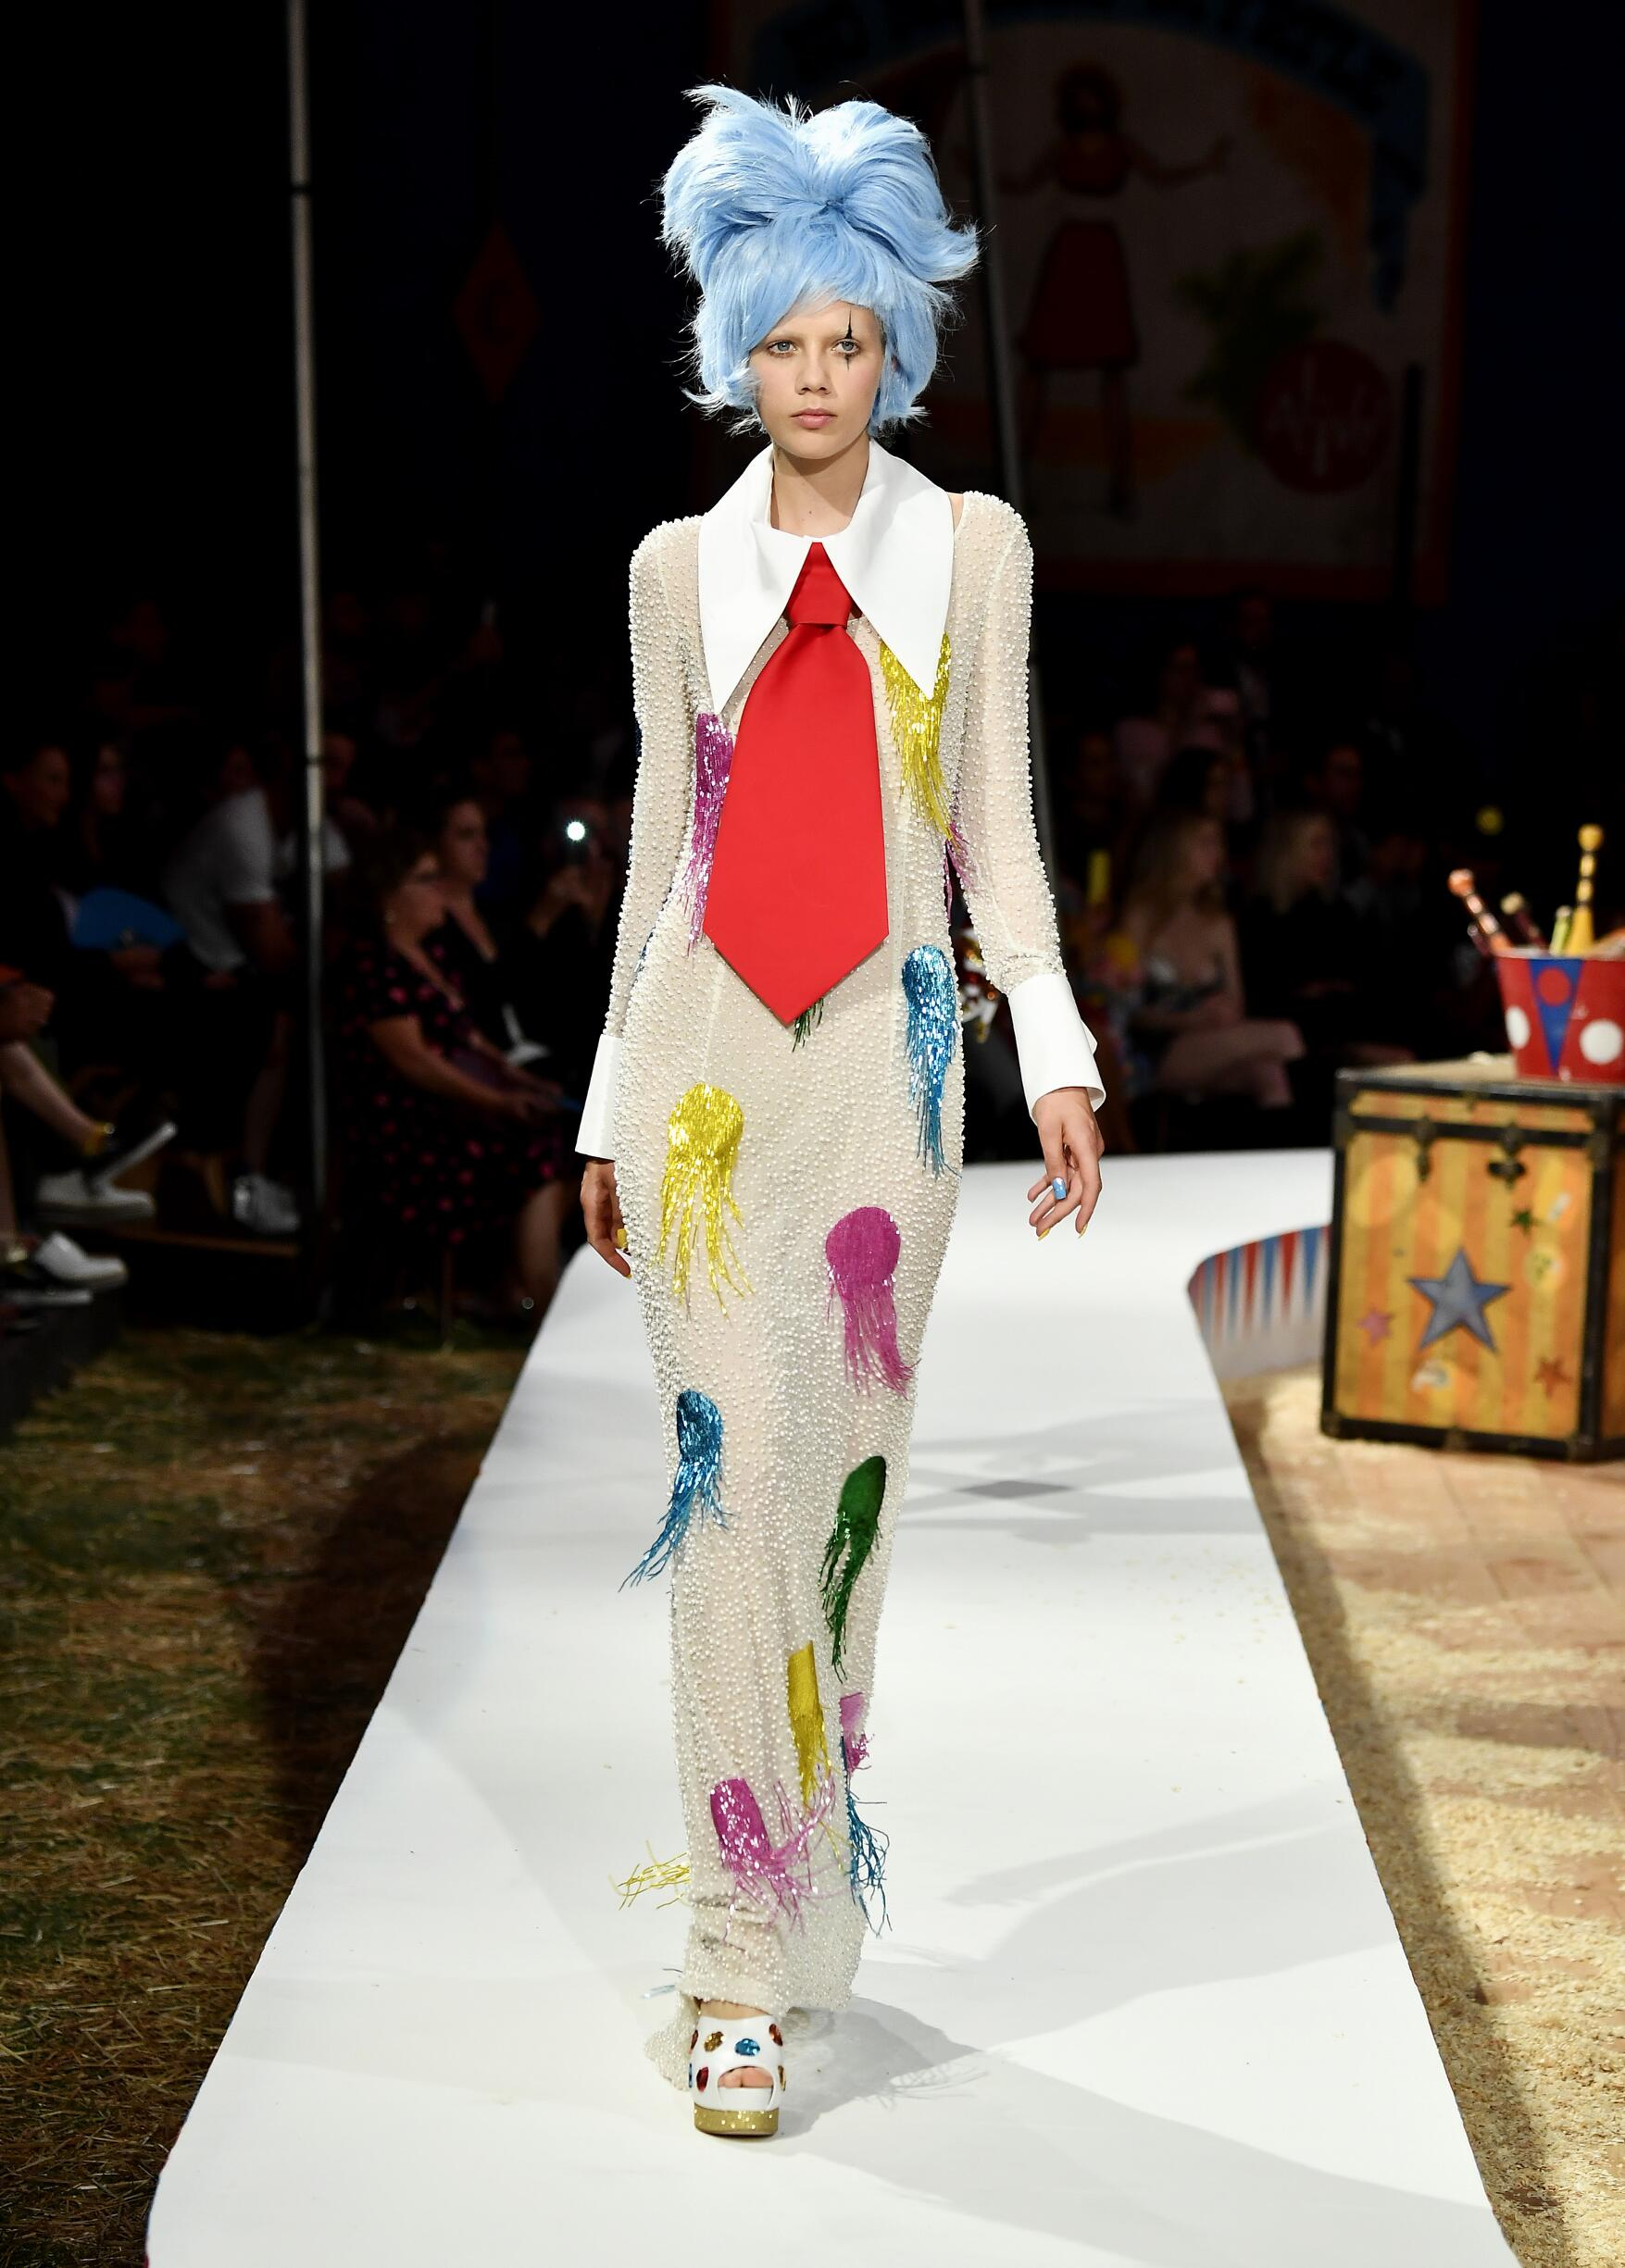 Moschino Spring Summer 2019 Menswear and Women's Resort Collection Look 49 Los Angeles